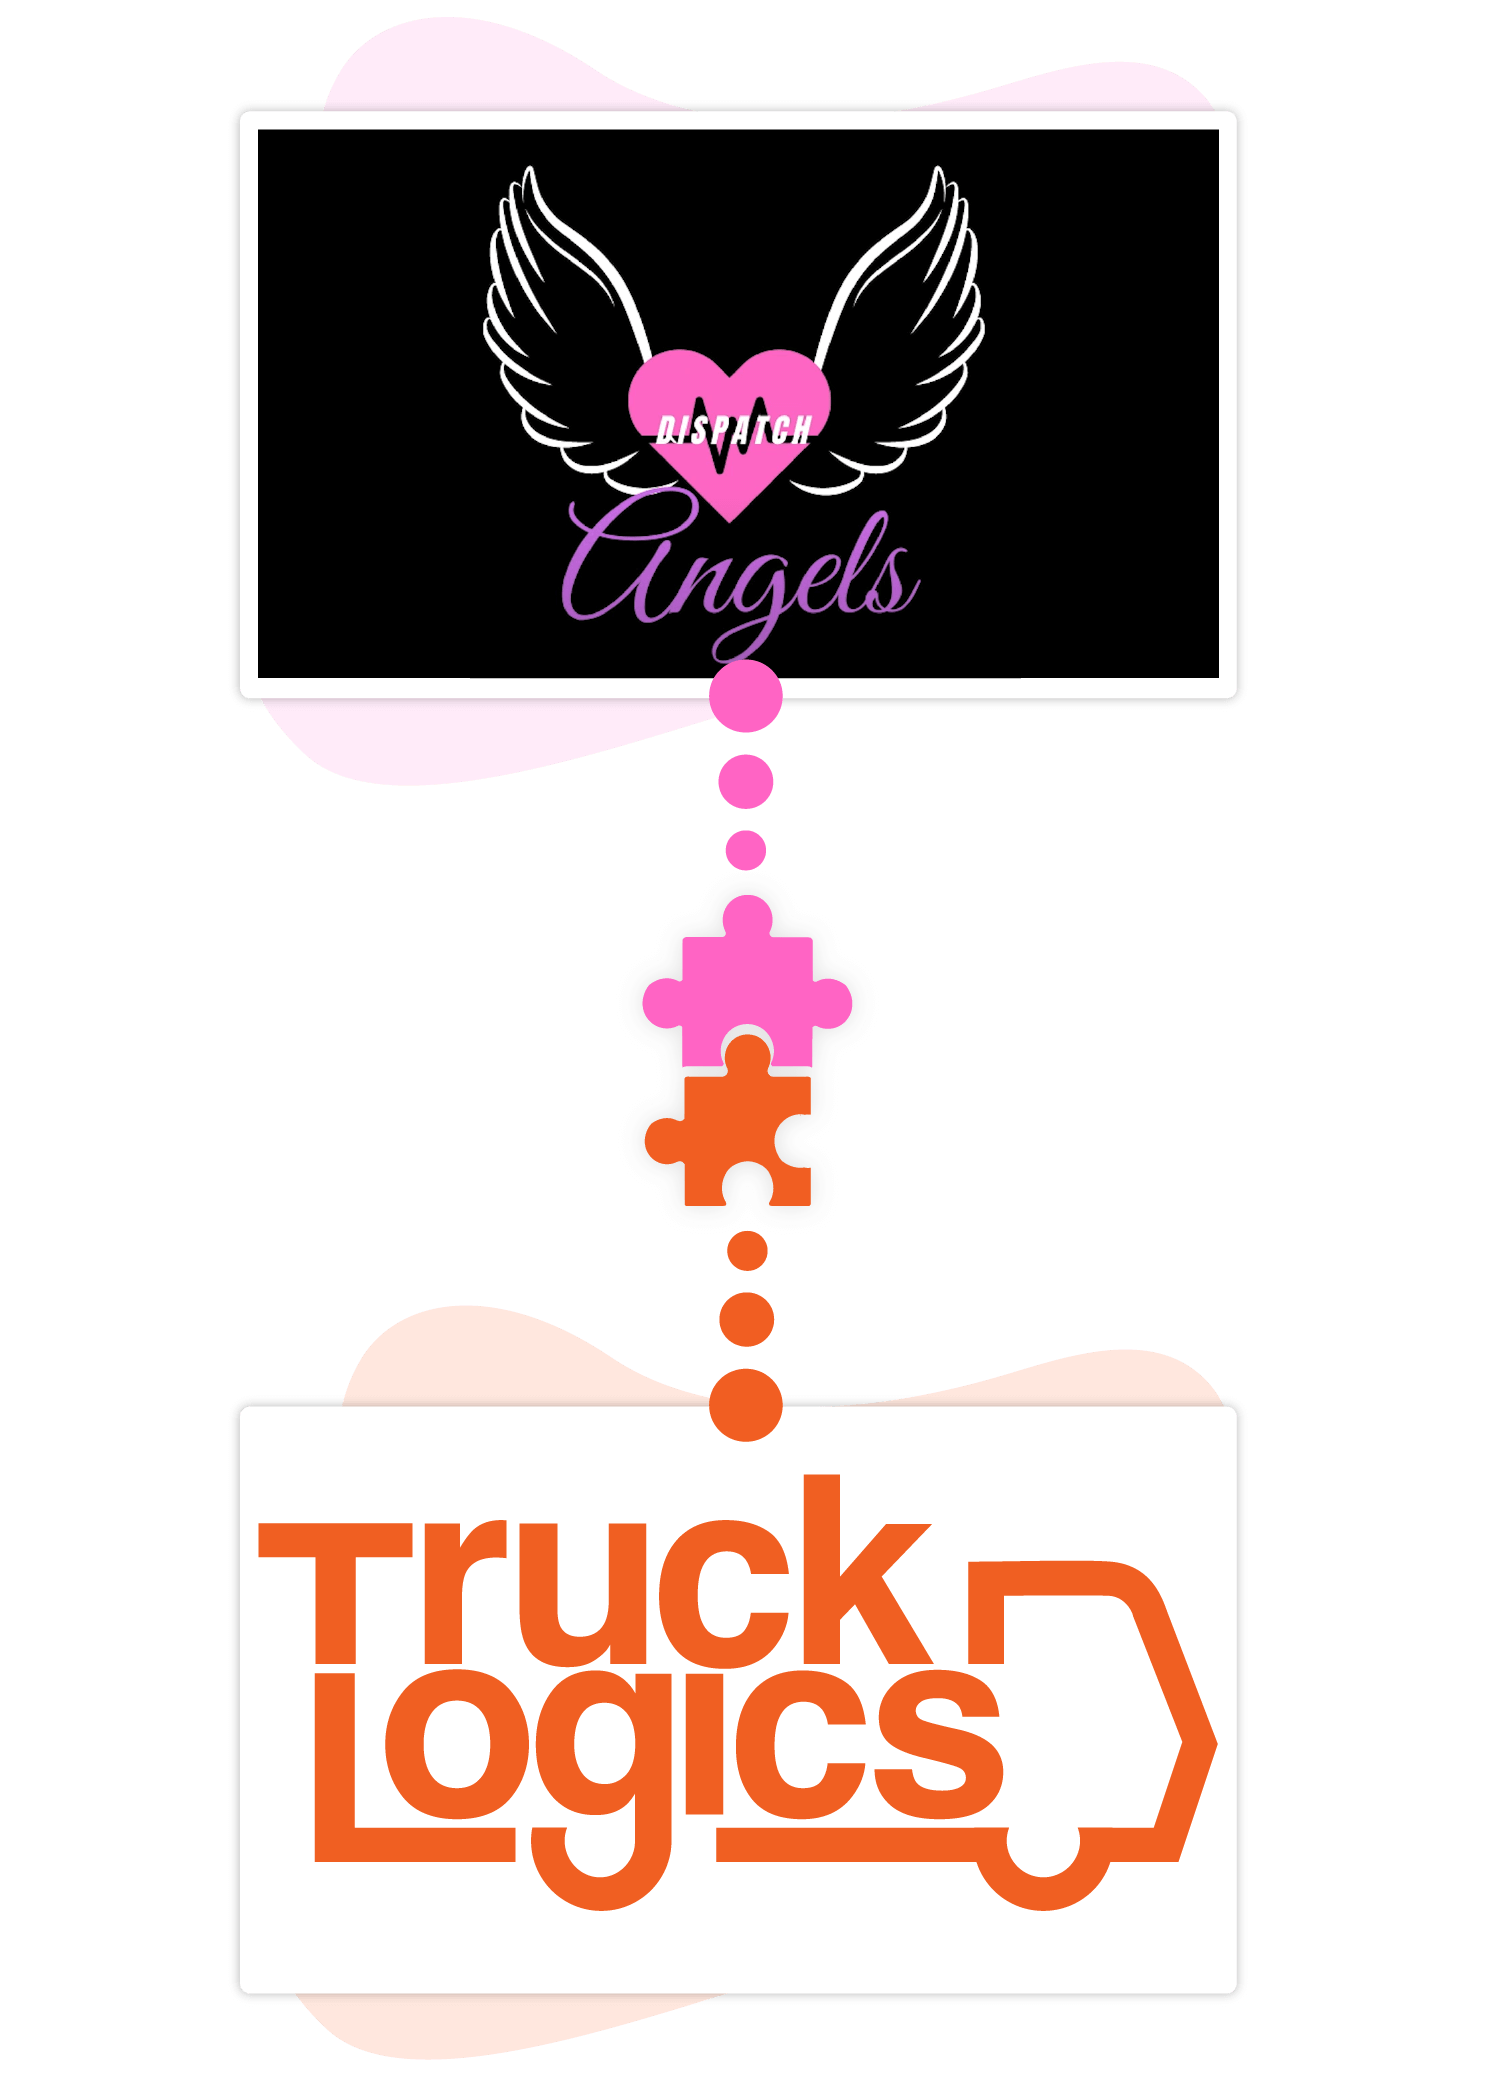 TruckLogics is now partnered with Dispatch Angels